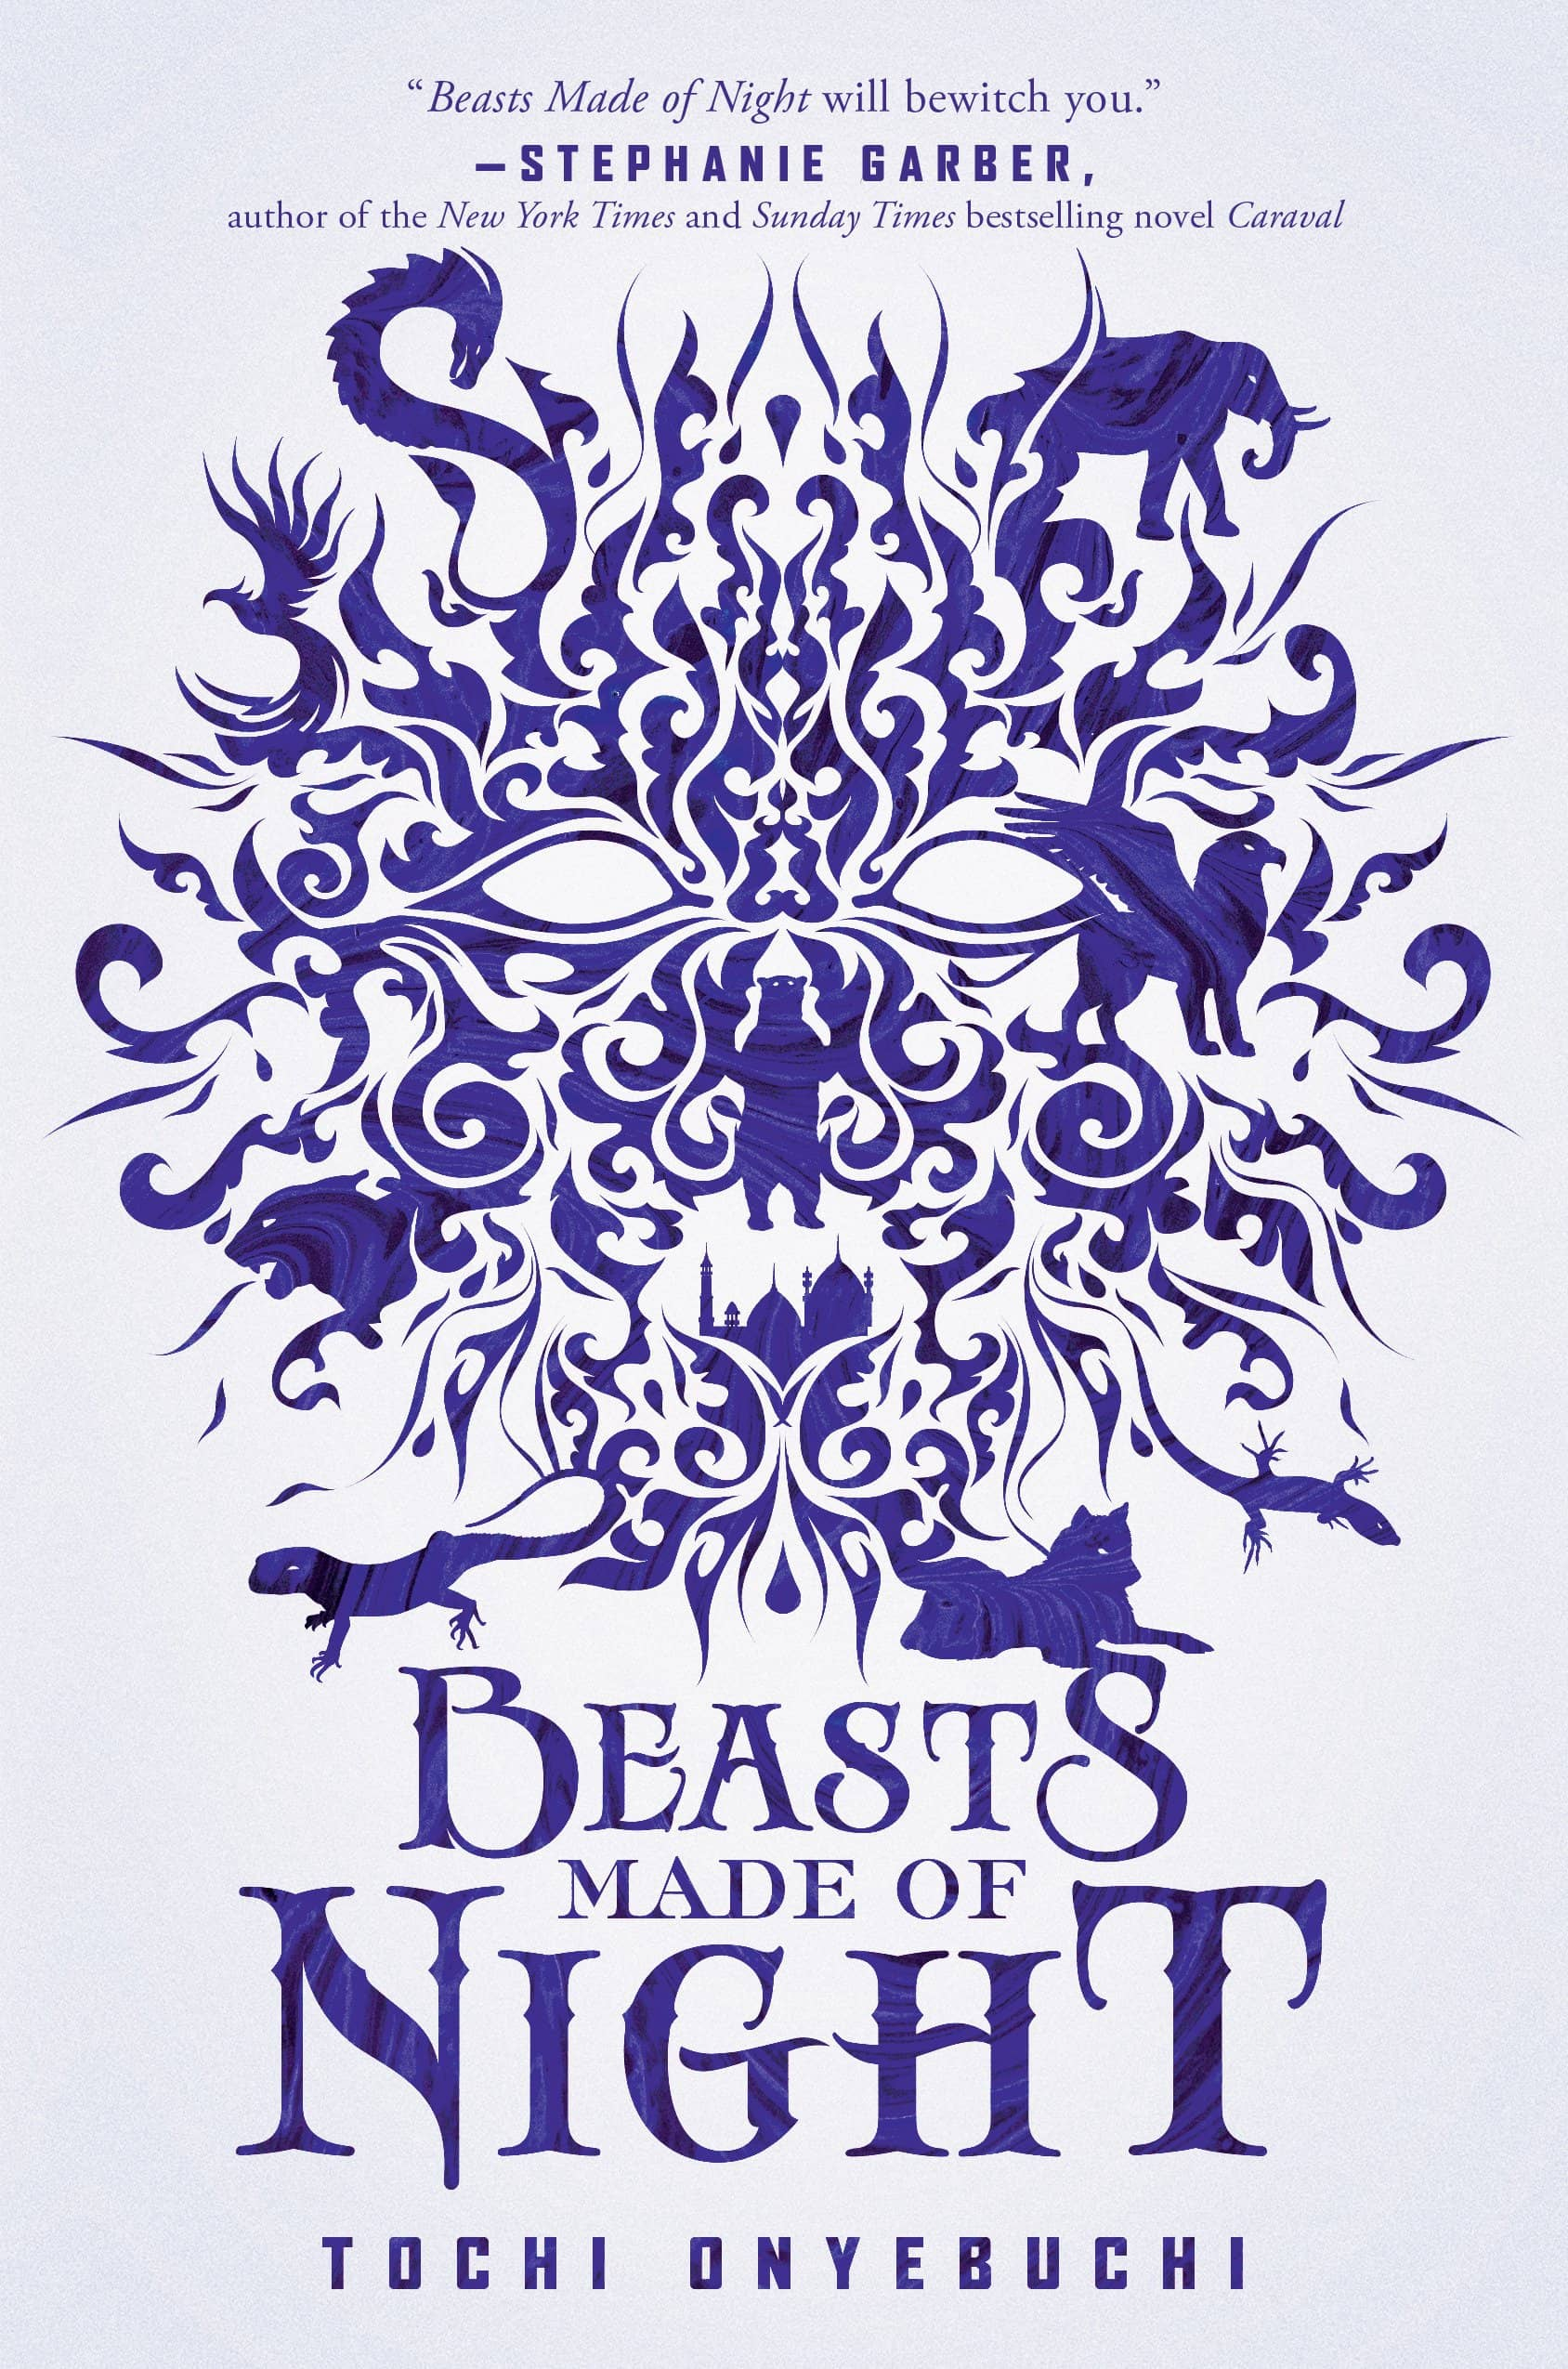 Colleen Mondor Reviews Beasts Made of Night by Tochi Onyebuchi ... 69be8f5ffb